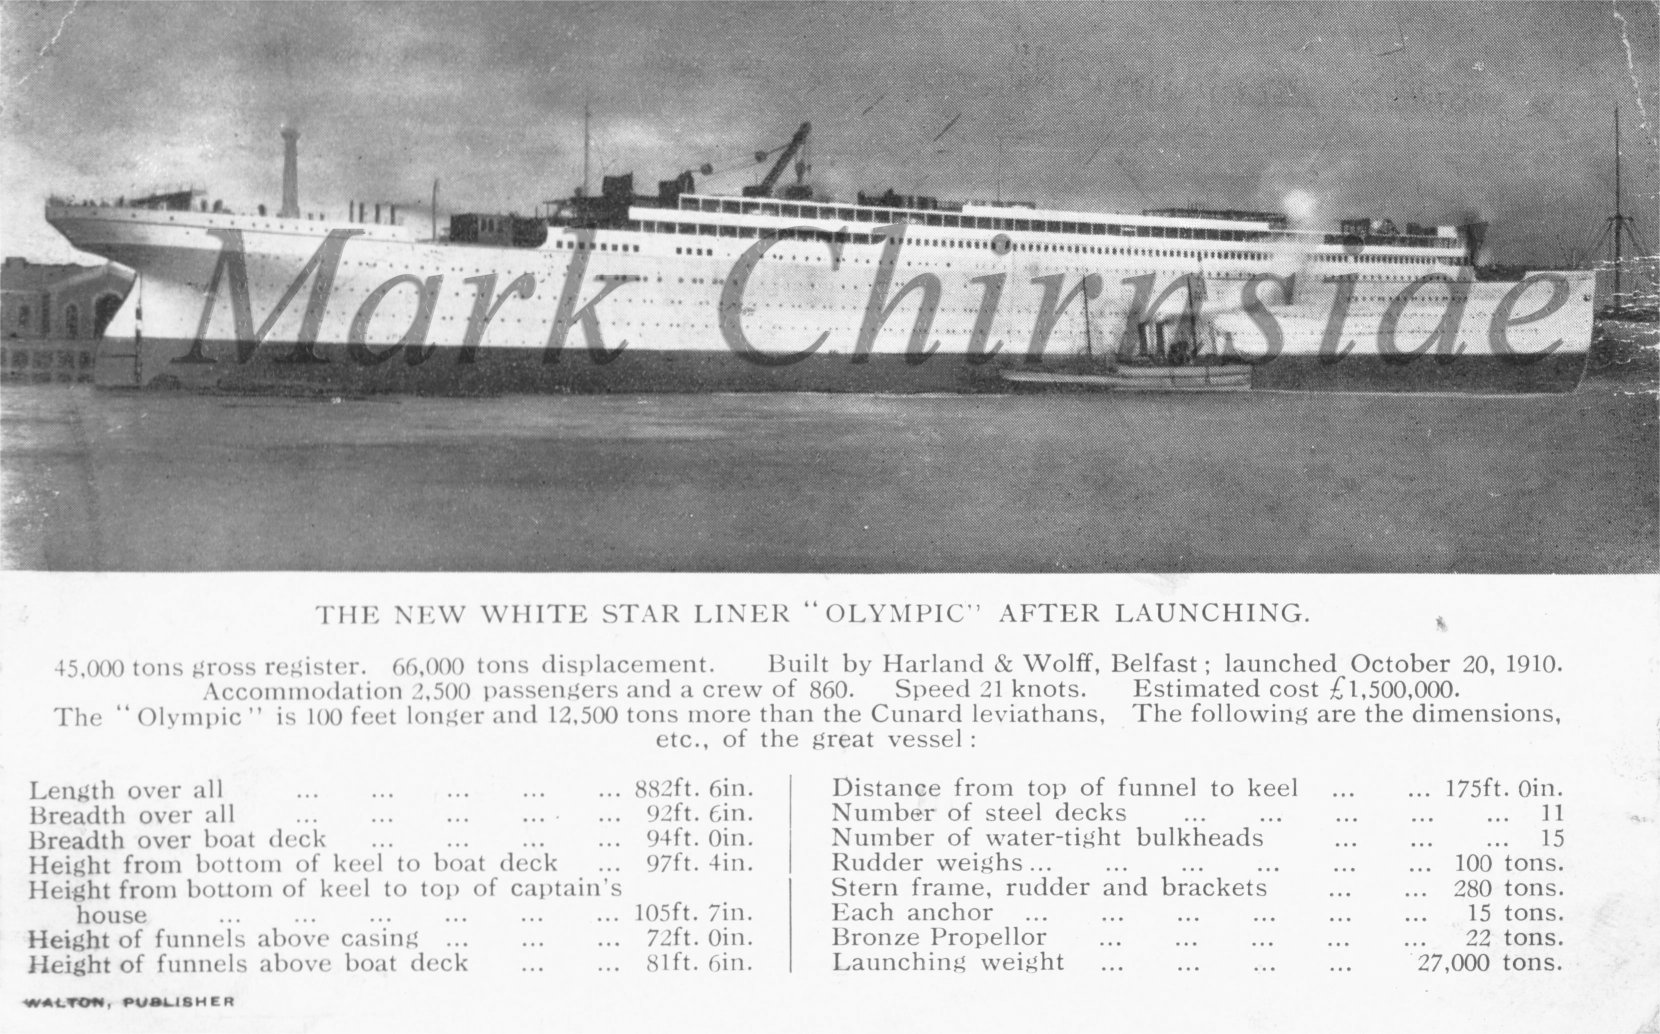 rms olympic launch postcard 1910